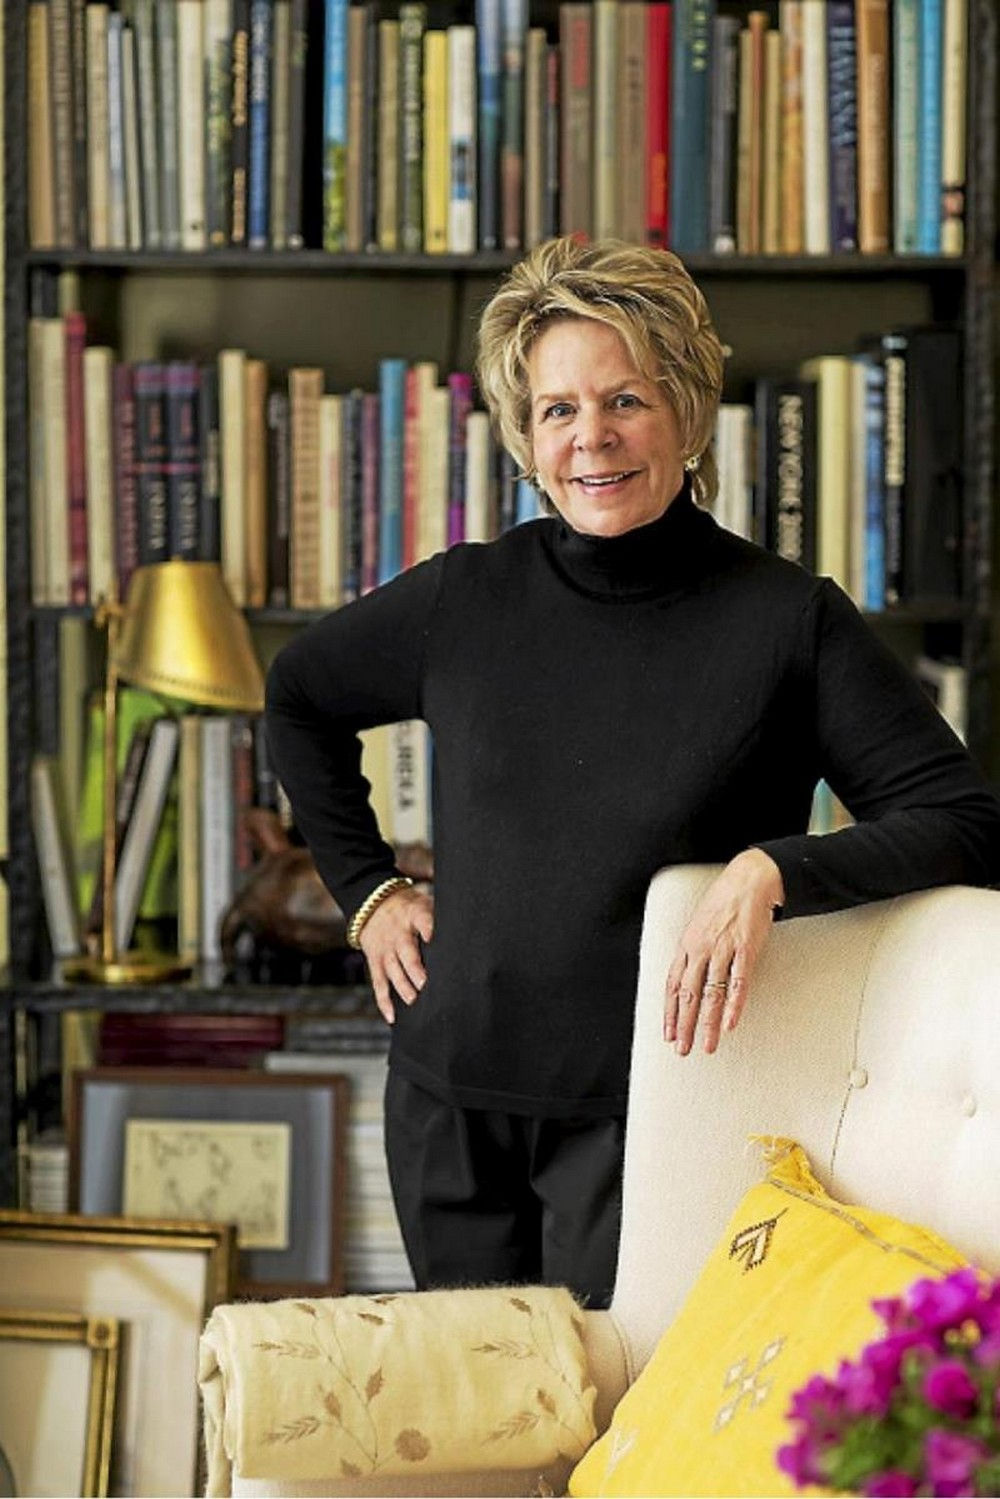 top interior designers Here are some top projects from New York's Top Interior Designers BunnyWilliams